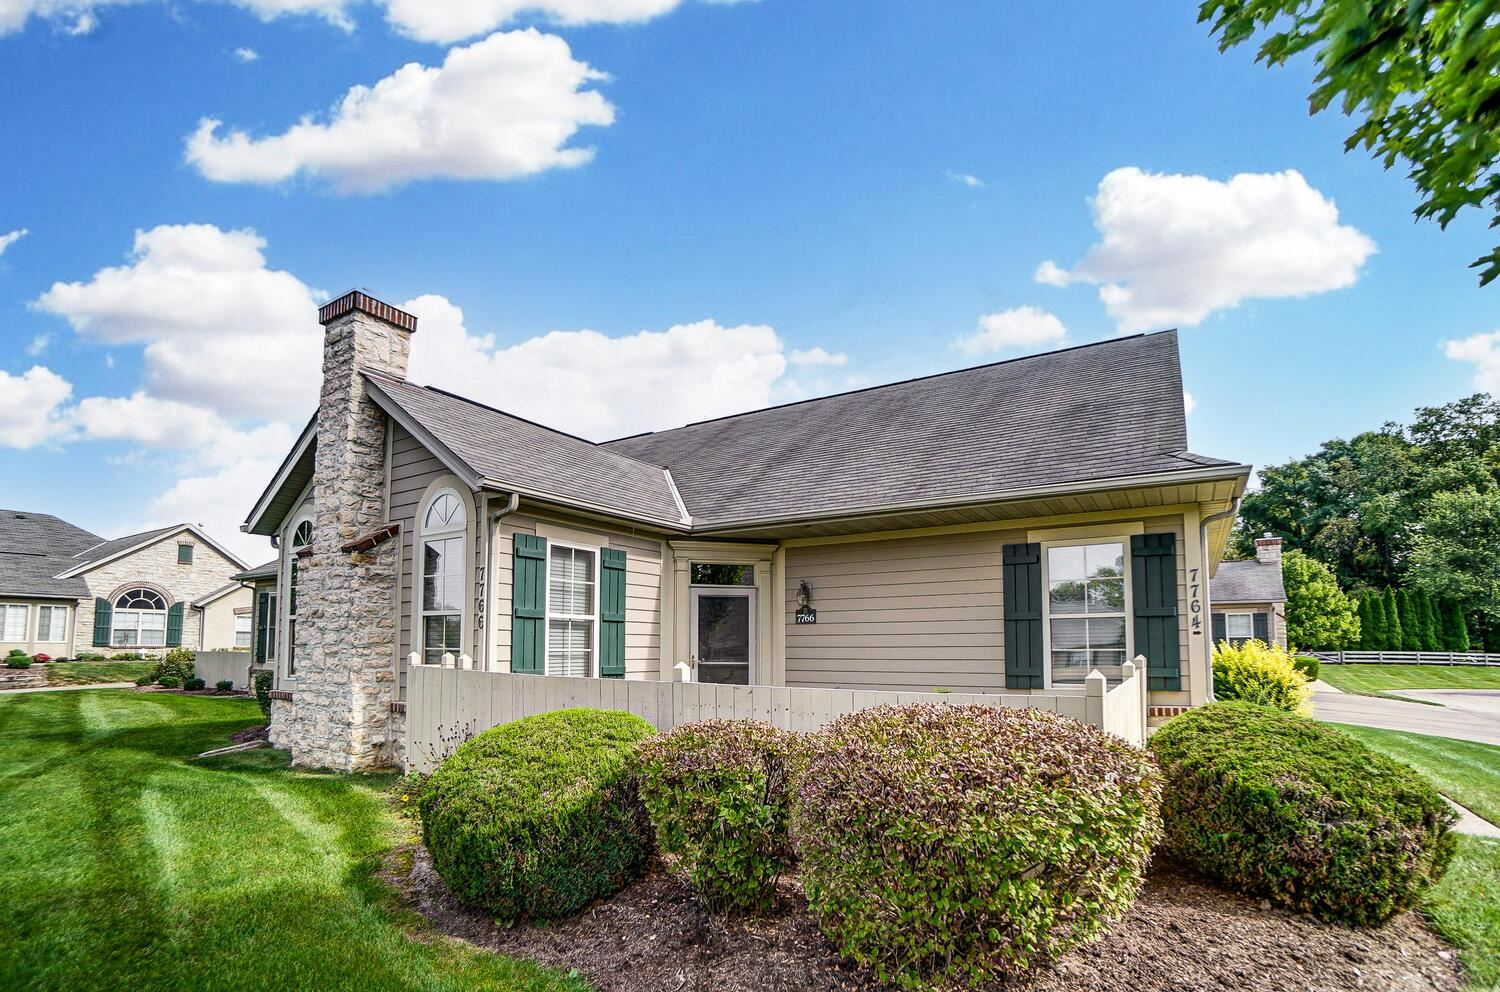 Photo of 7766 Blue Juniper Drive, Westerville, OH 43082 (MLS # 221039861)